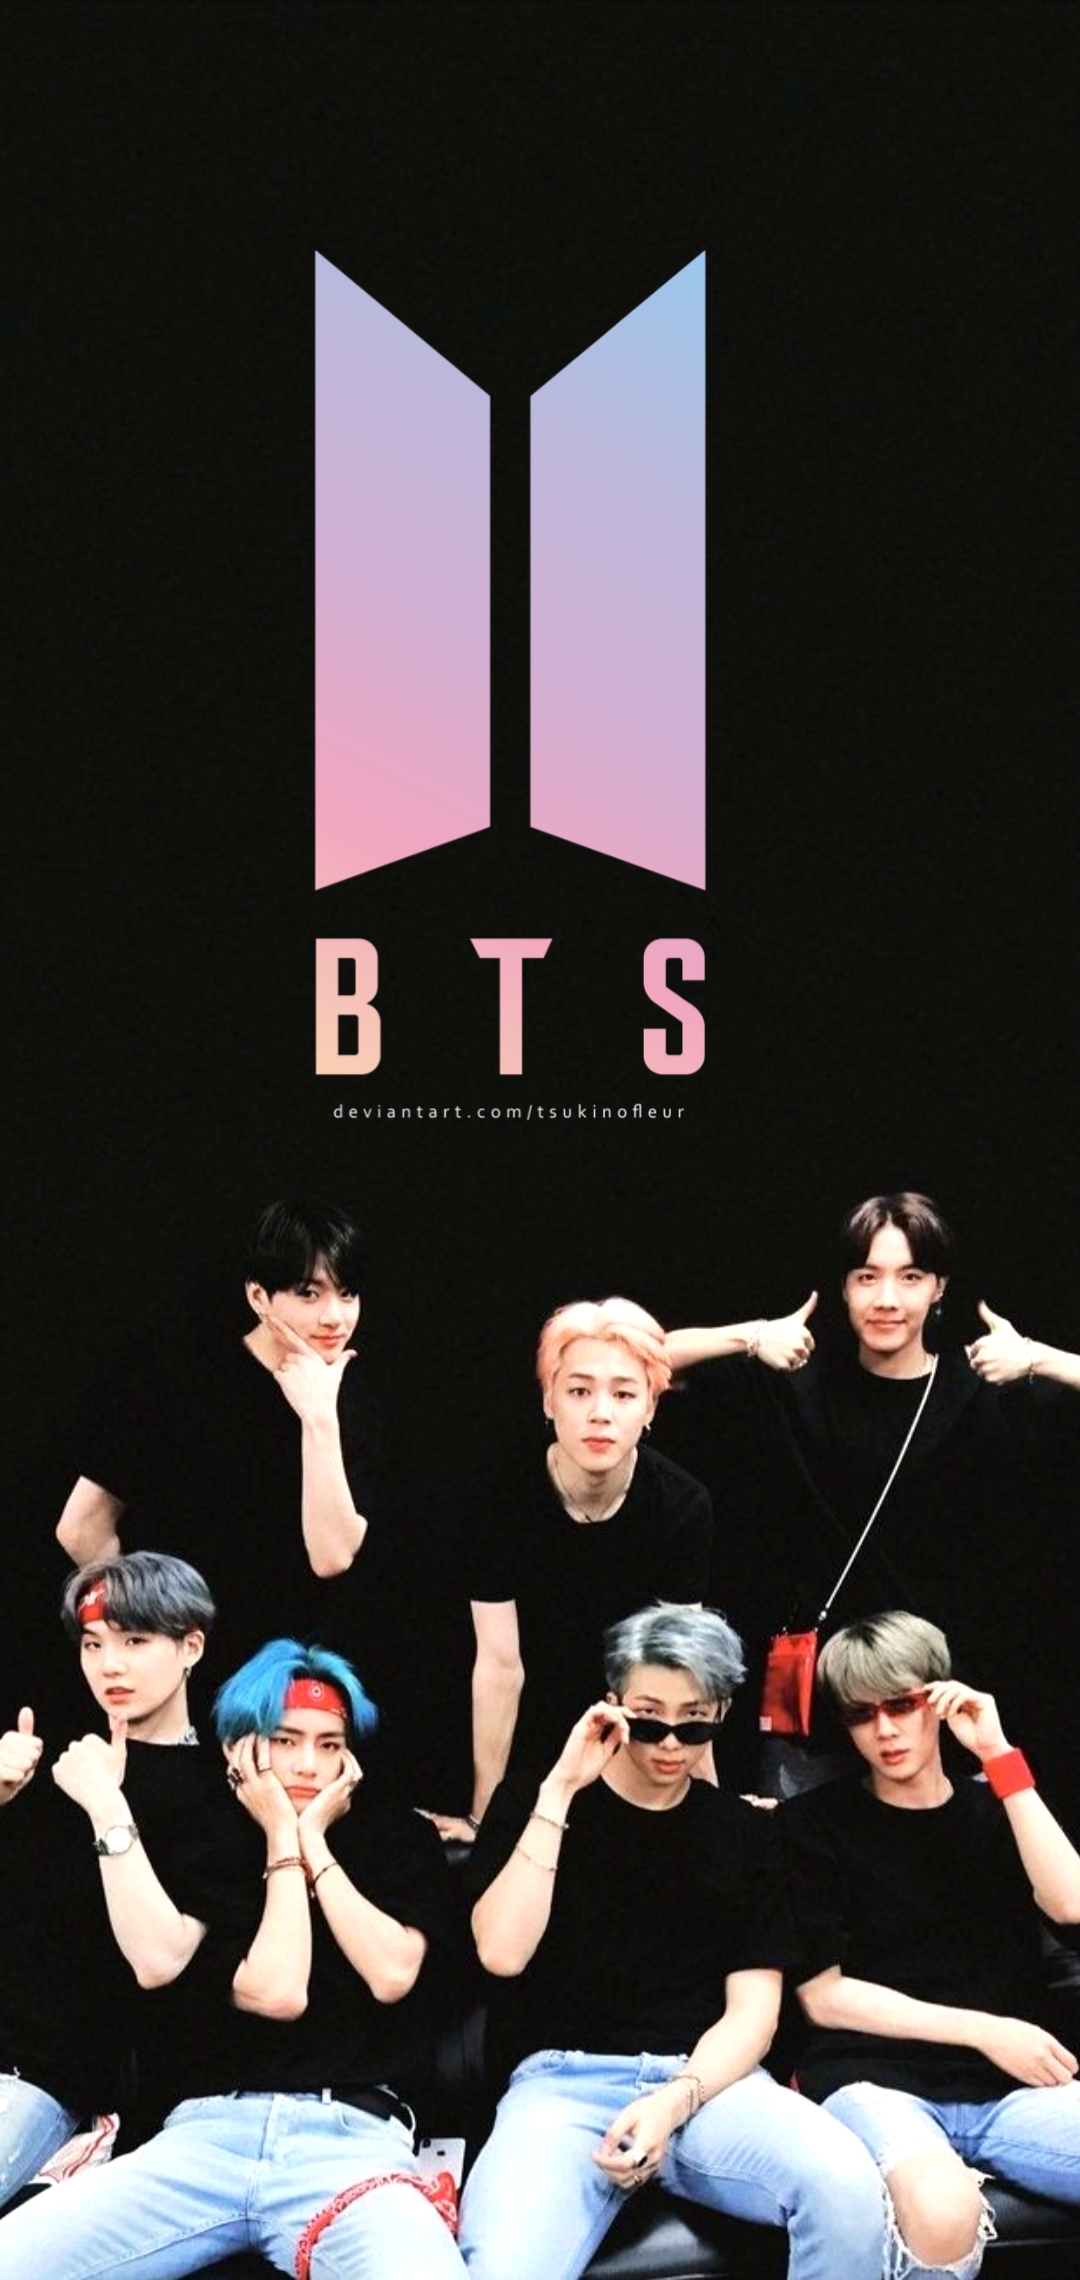 Bts Iphone Wallpaper